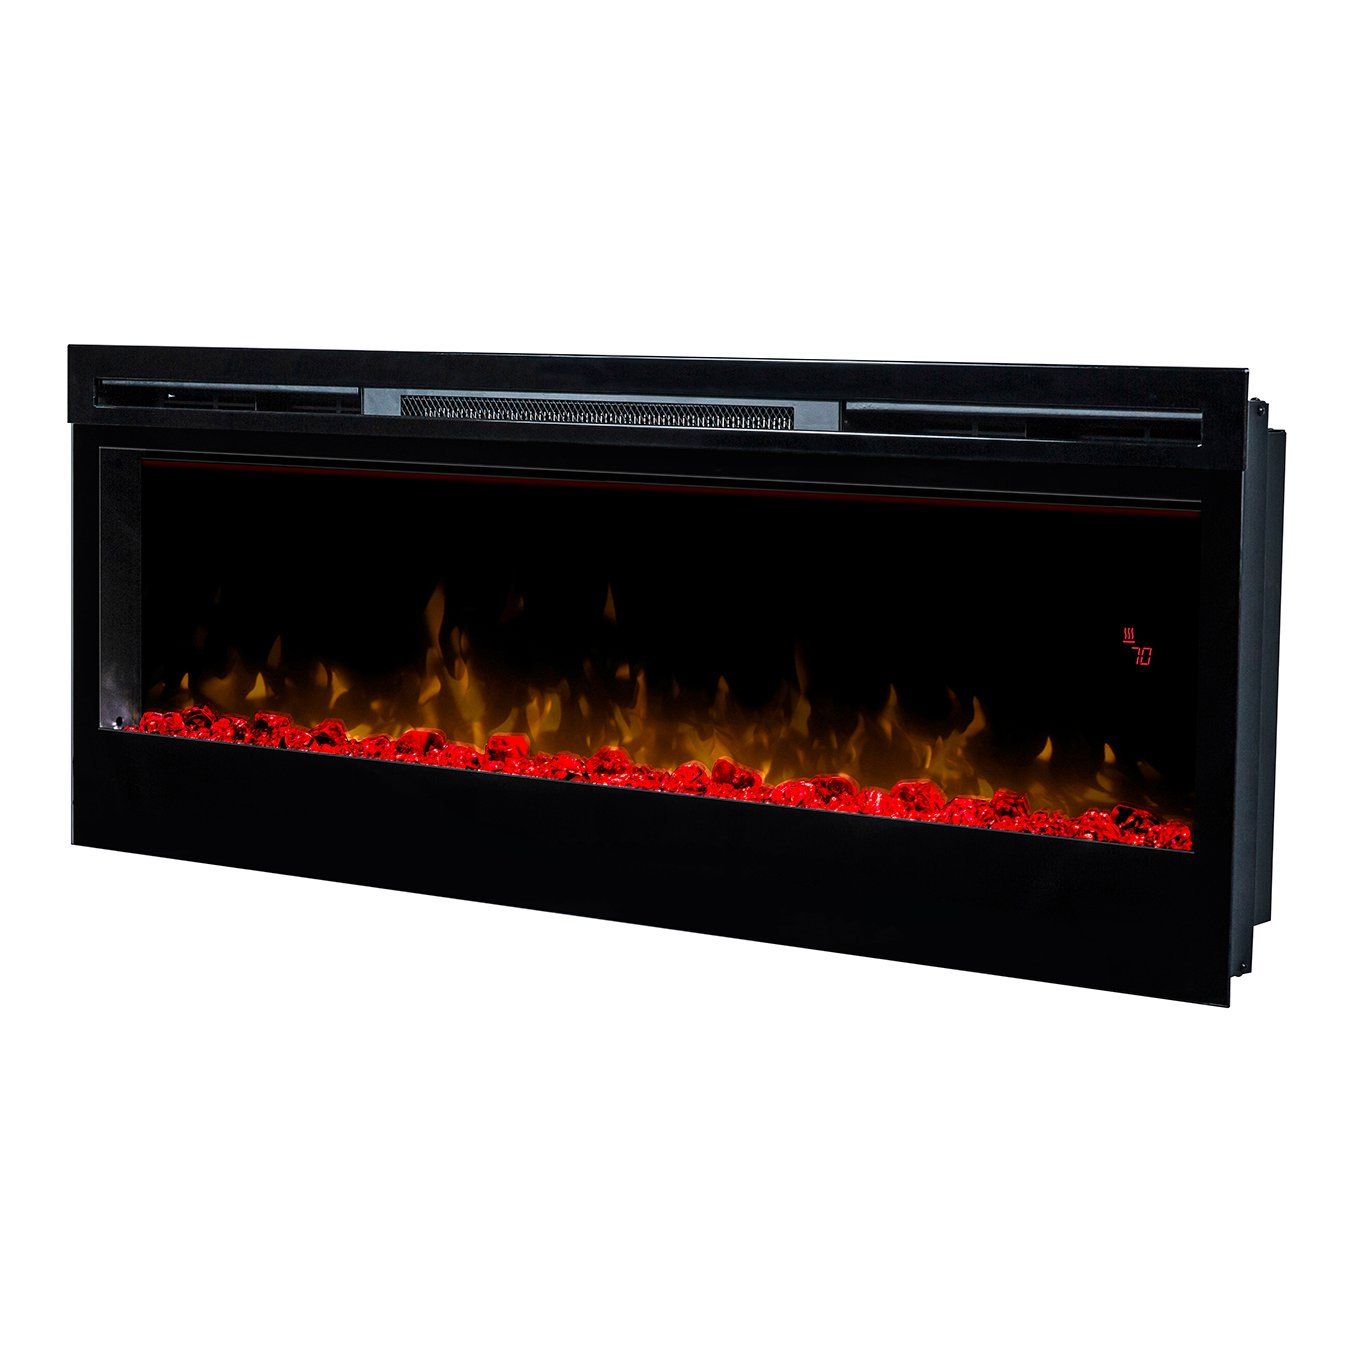 50 Electric In Wall Recessed Fireplace Heater